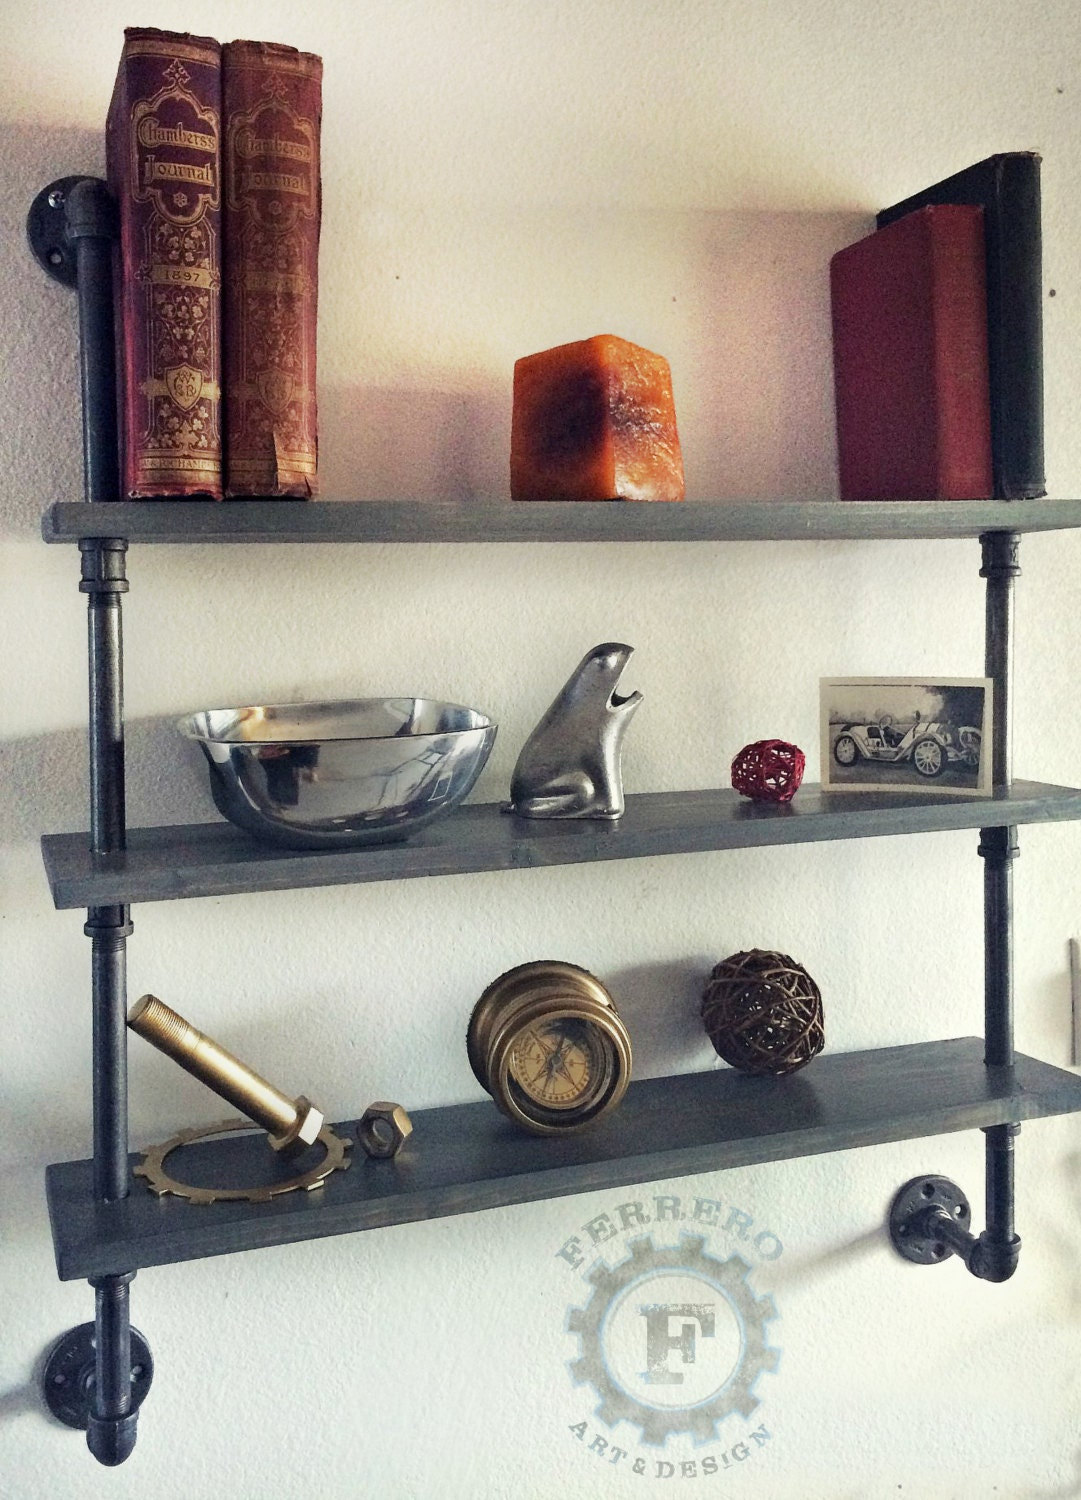 Steampunk Shelves Shelving Shelf Pipe Shelf Industrial Shelves